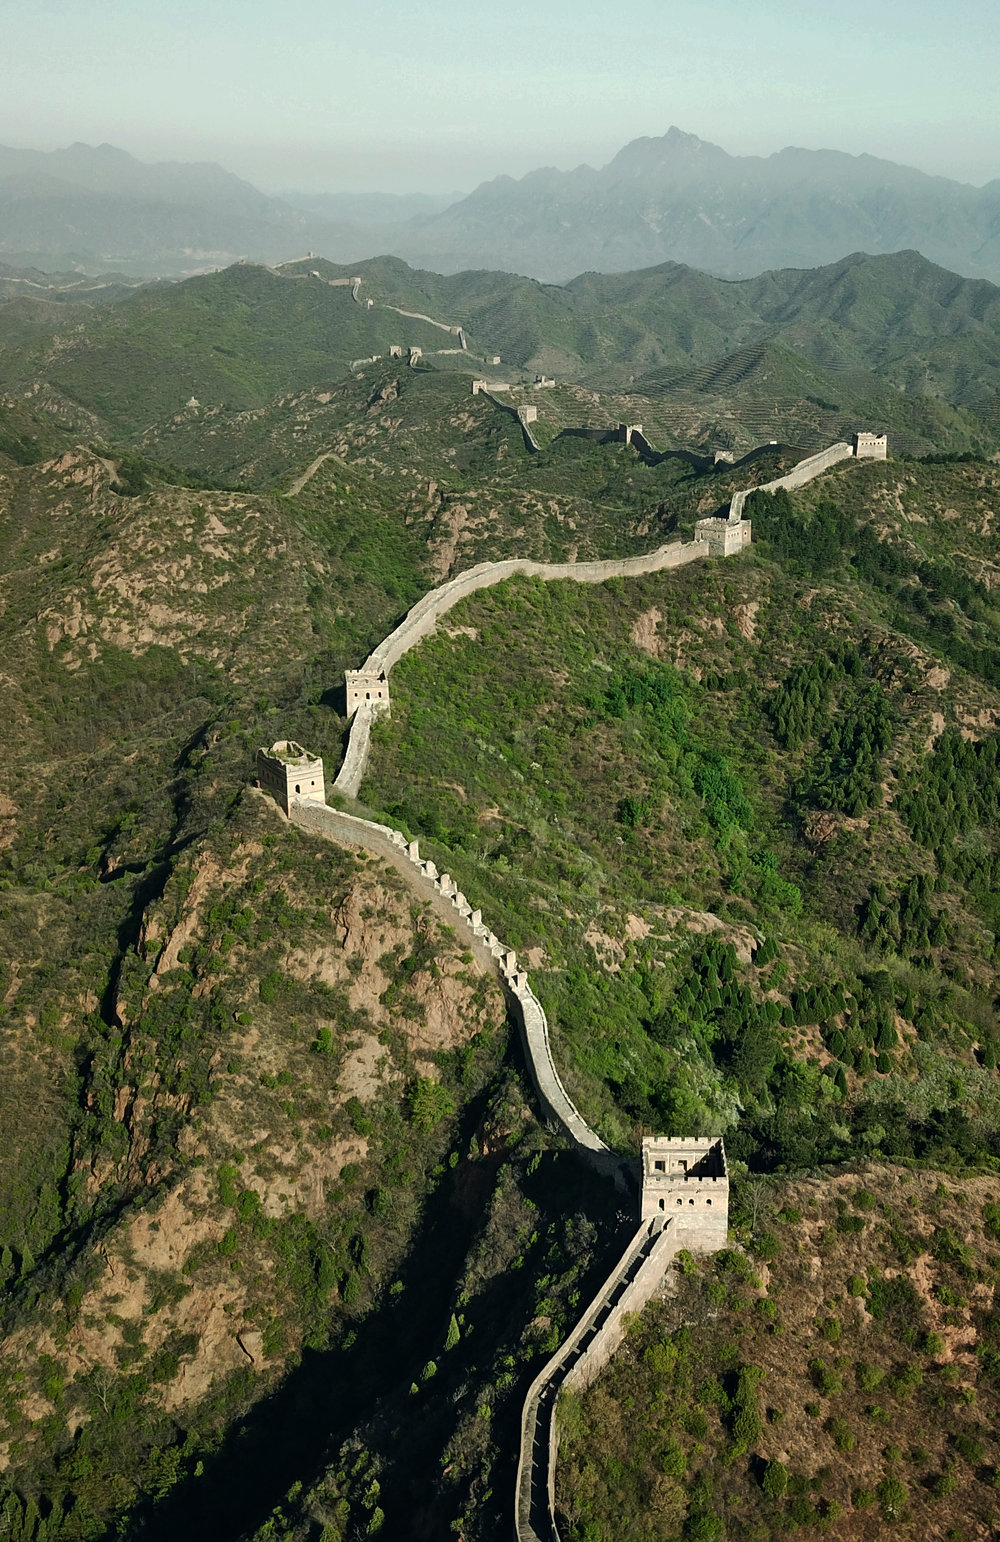 The Great Wall, Jingshanling. From 500ft.